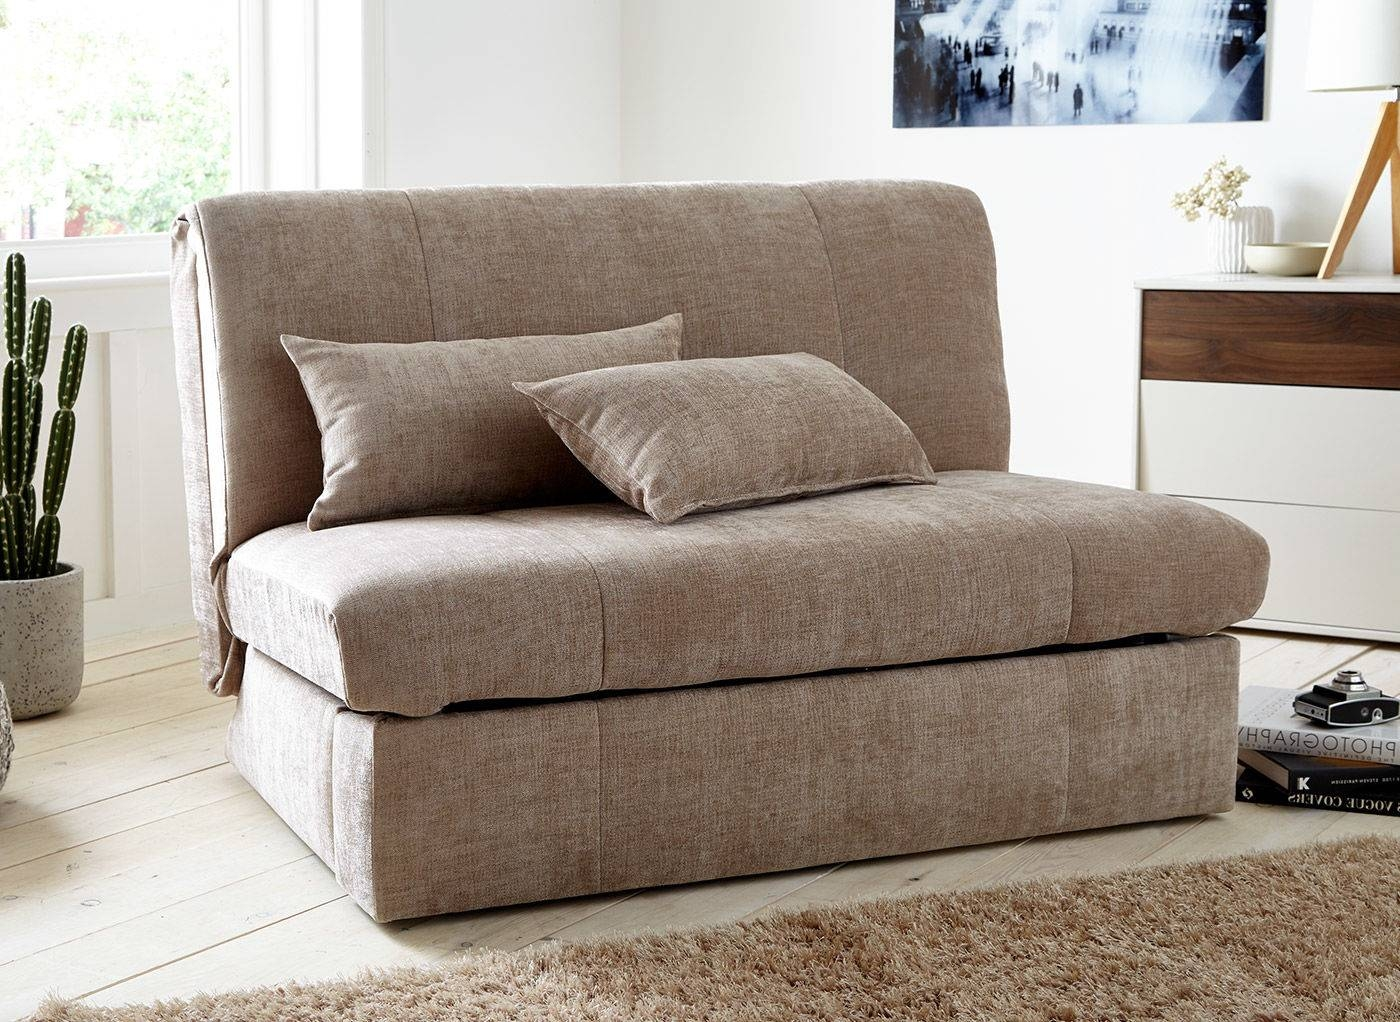 Furniture & Rug: Fancy Balkarp Sofa Bed For Living Room Furniture intended for Sofa Beds With Trundle (Image 8 of 15)